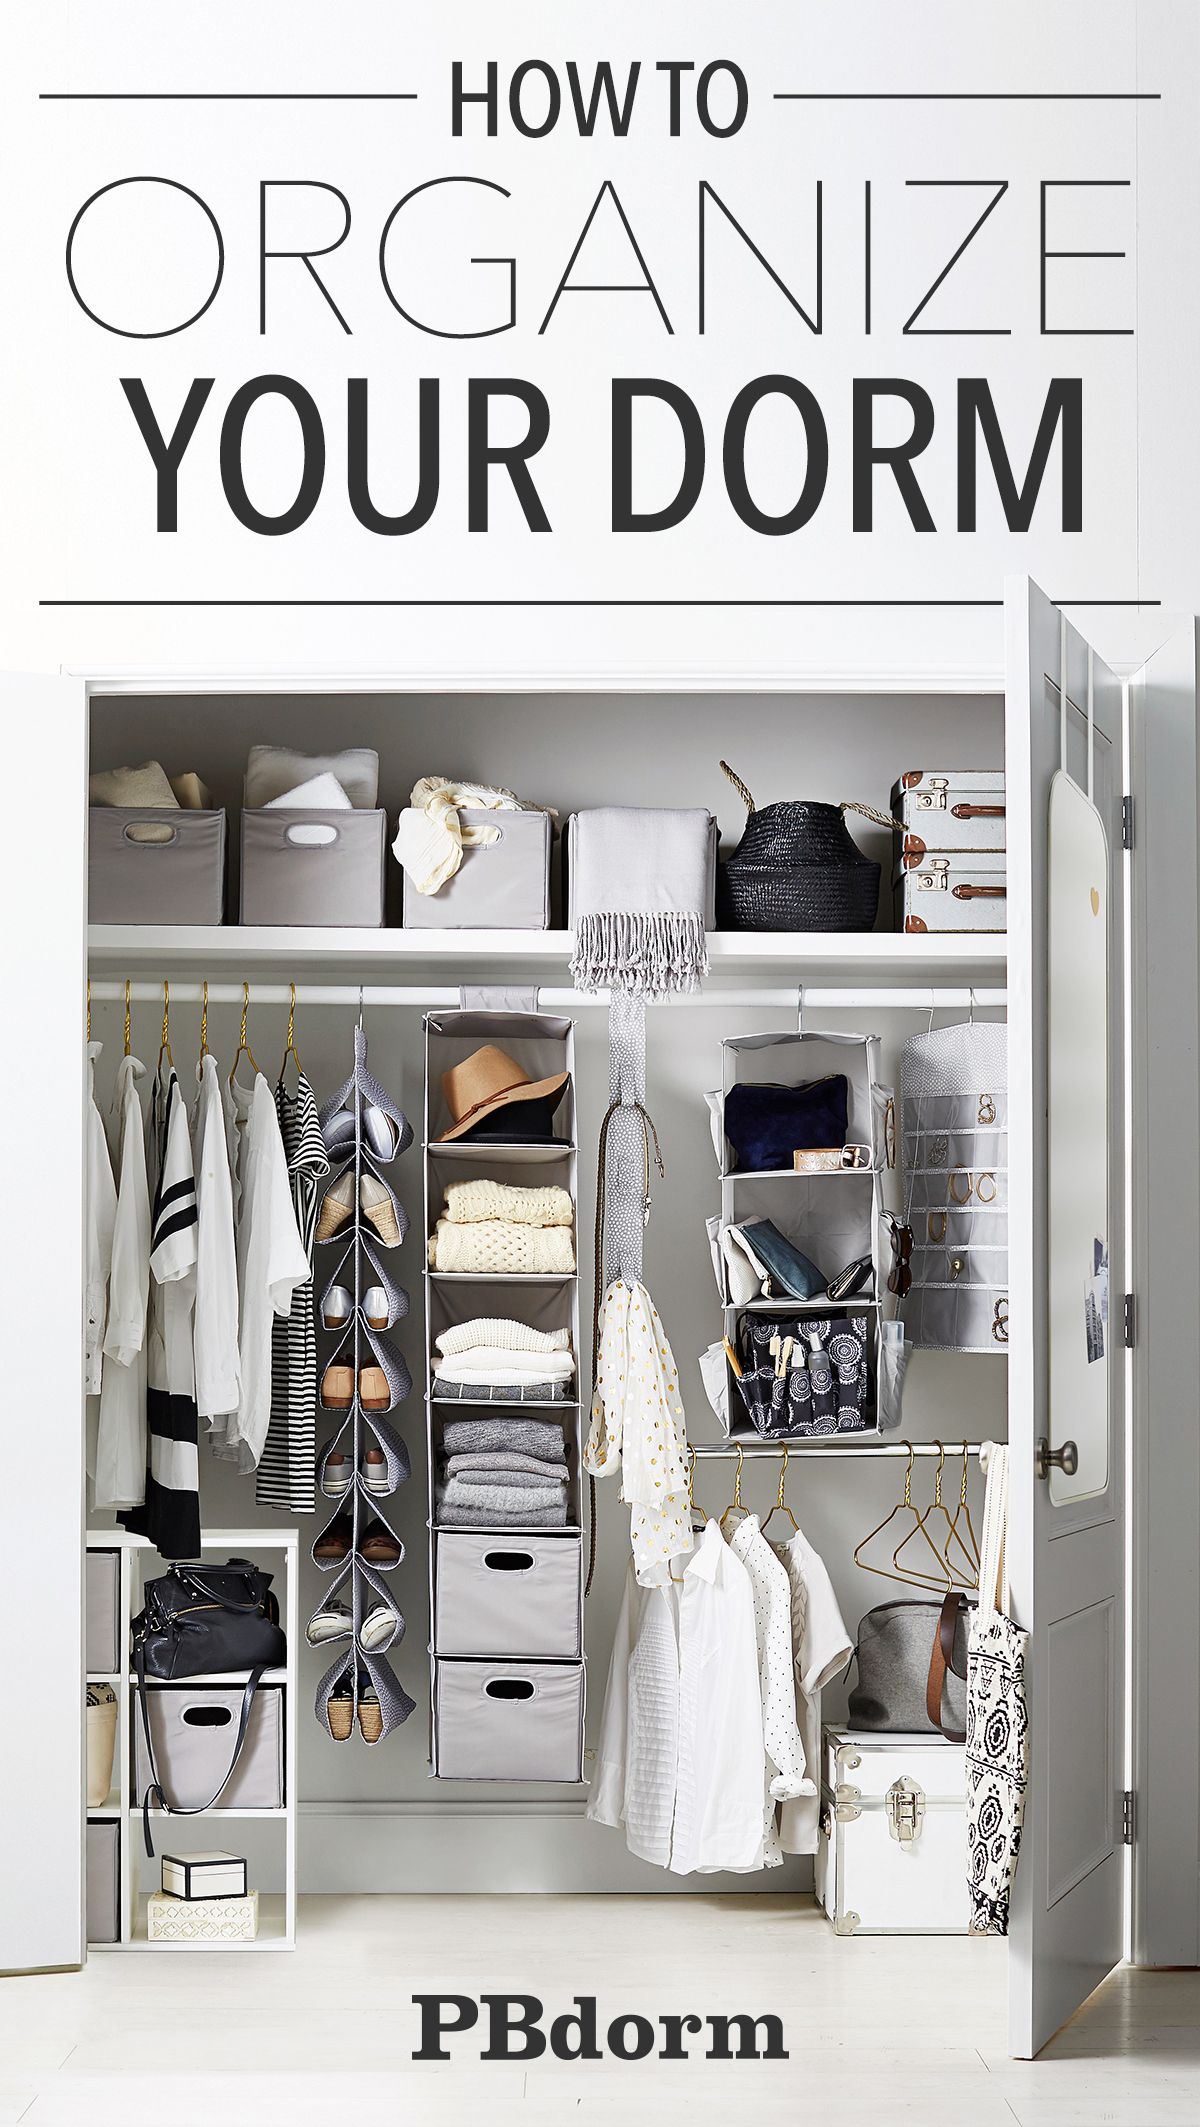 When you have to share a closet maximizing space is key! Get storage bins and label them with your names so you know whose things go where.  sc 1 st  Pinterest & When you have to share a closet maximizing space is key! Get ...